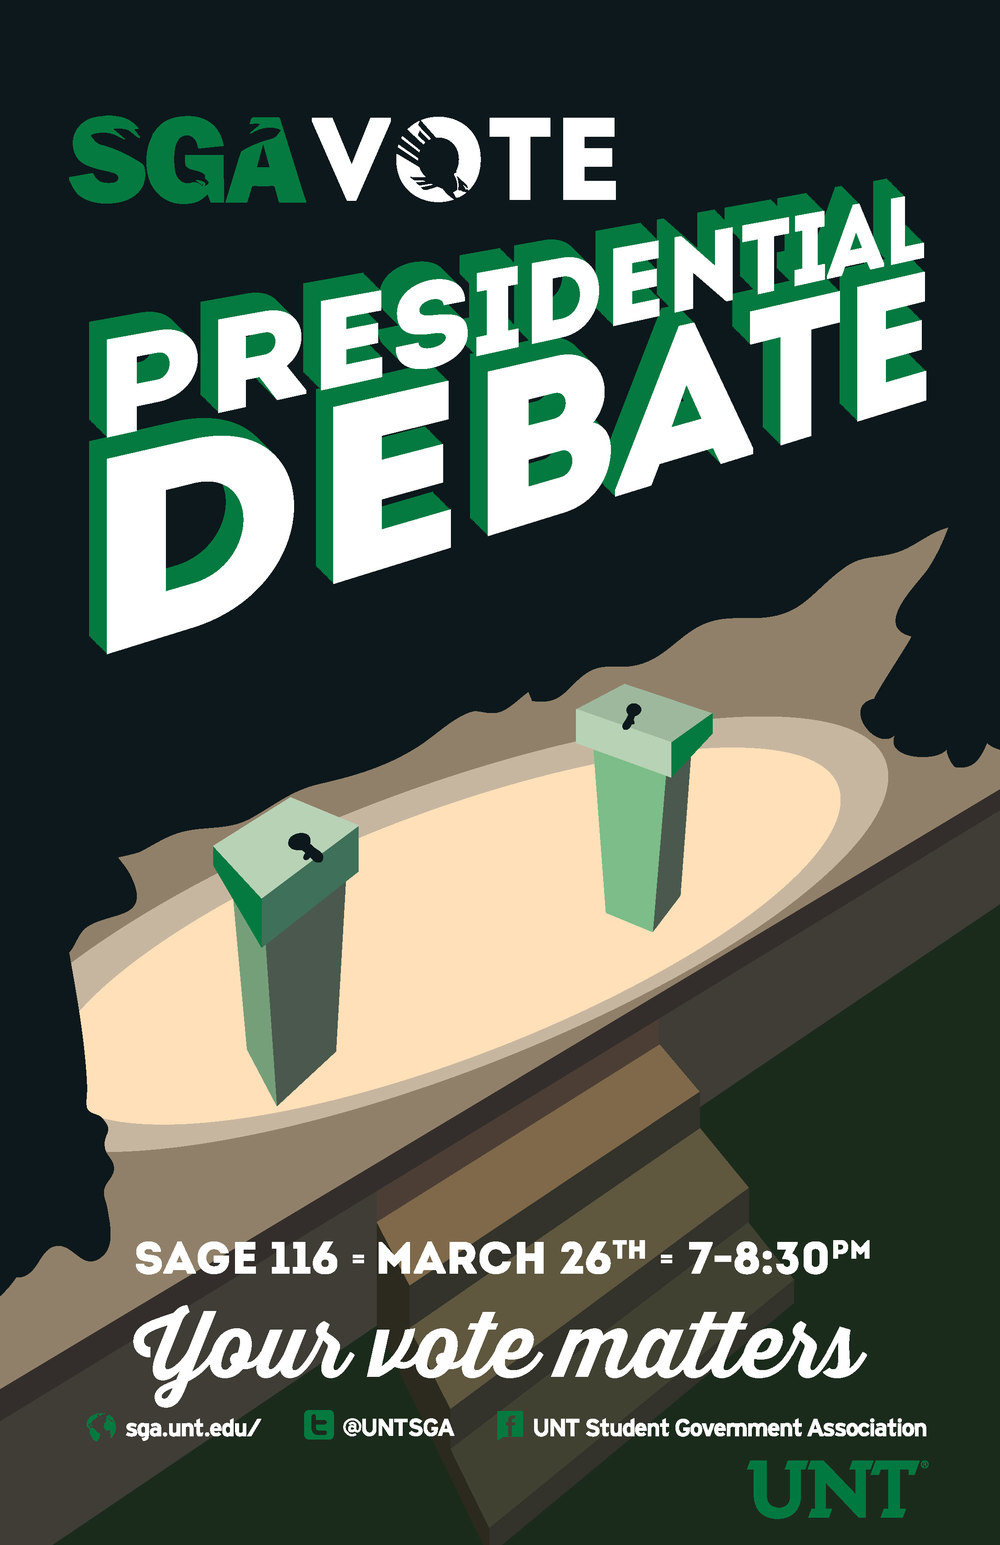 One of the many posters designed and produced for the student government's campaign to get students to participate in the student government elections.   The presidential debate was telecast in front of a student audience and moderated by UNT's debate organization.